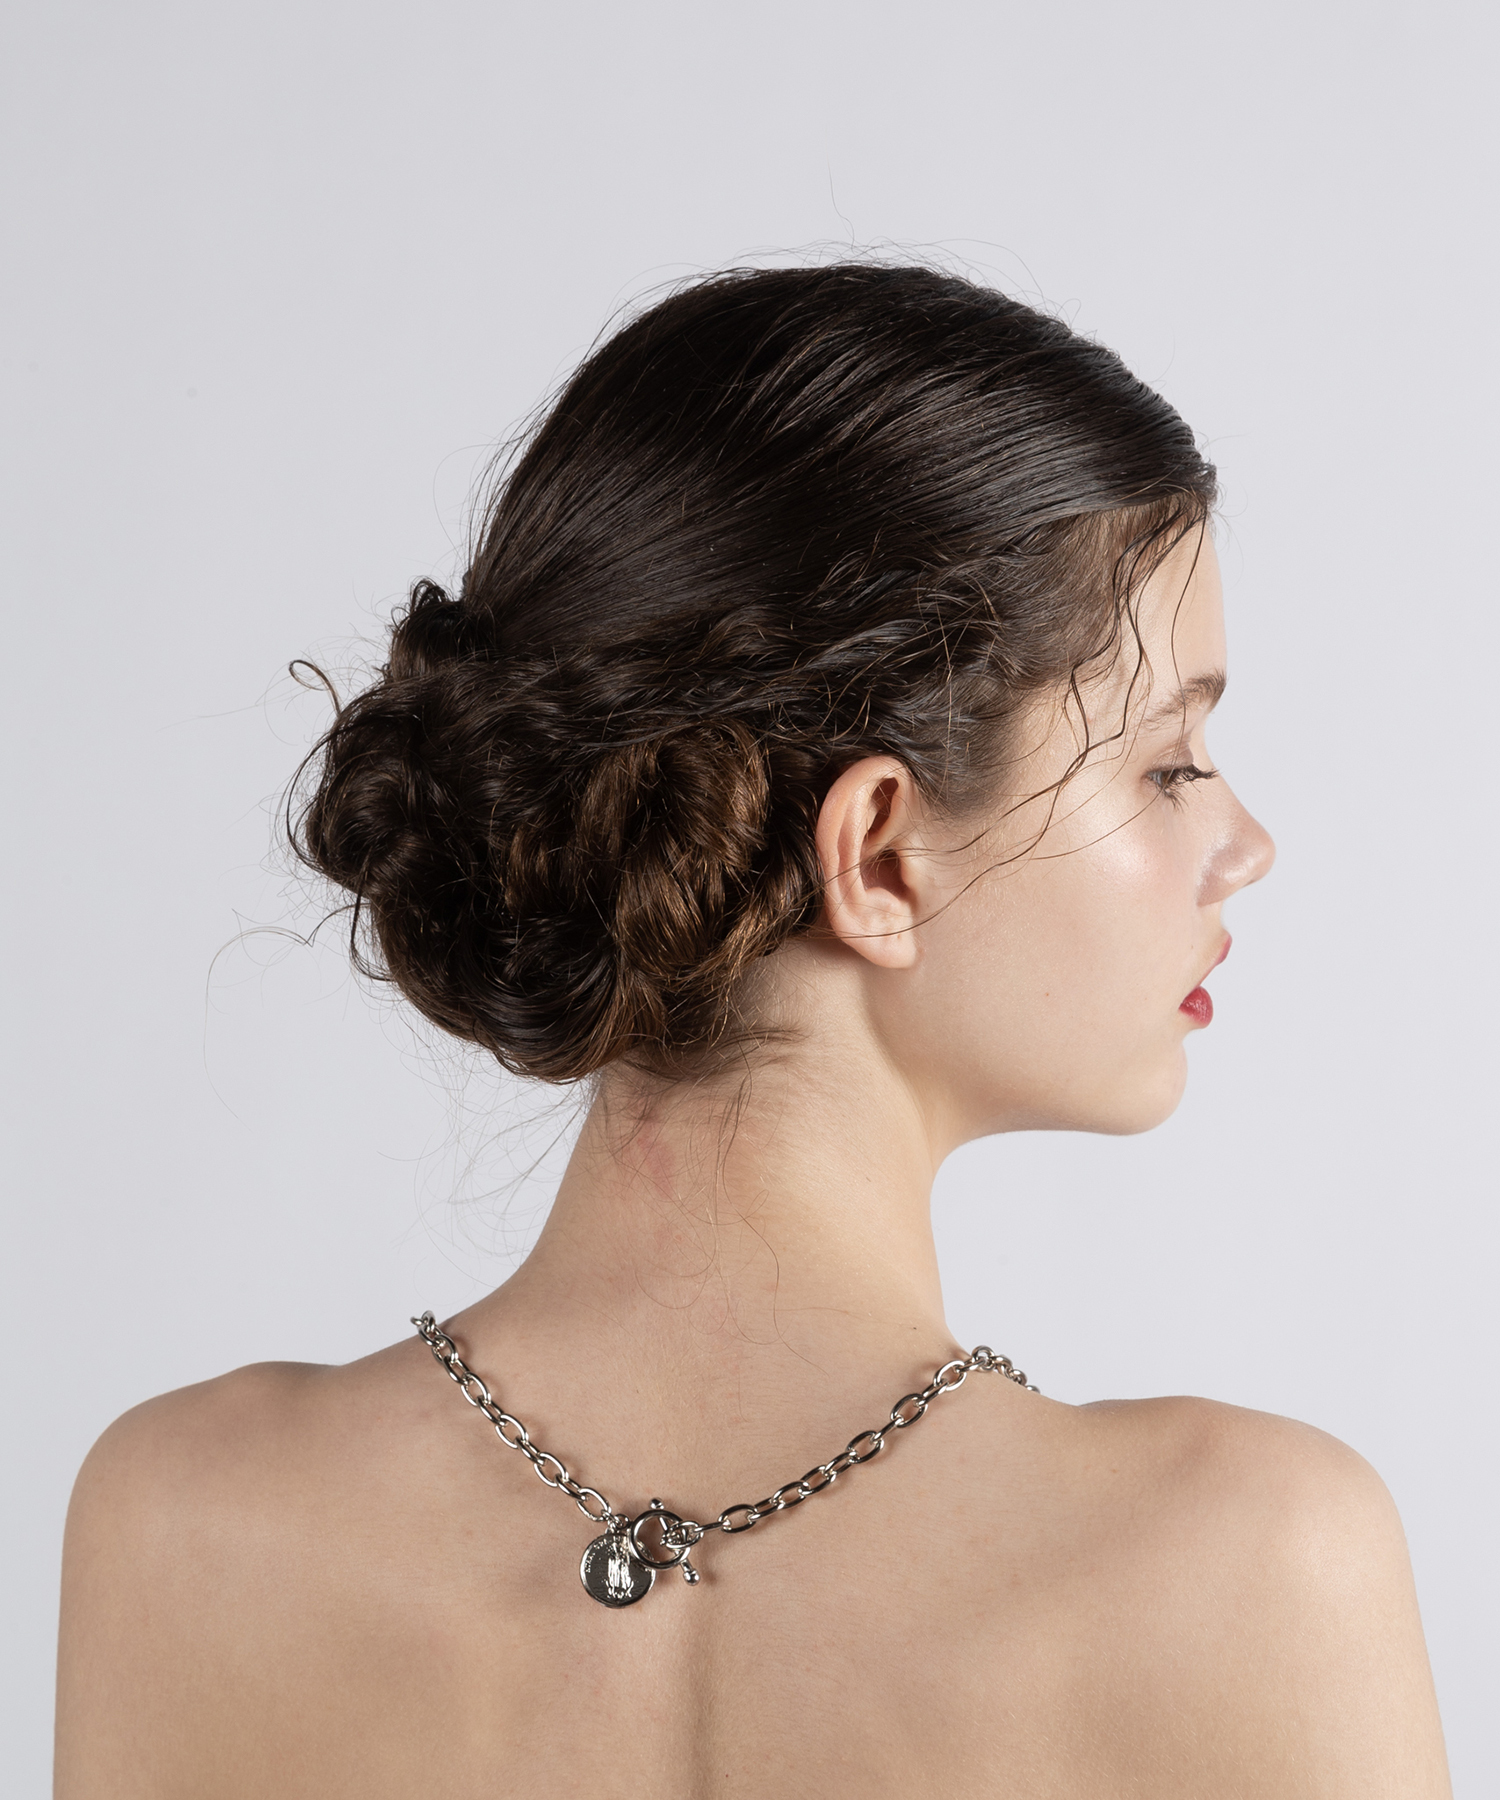 hs19SM-JR04 COIN CHAIN CHOKER